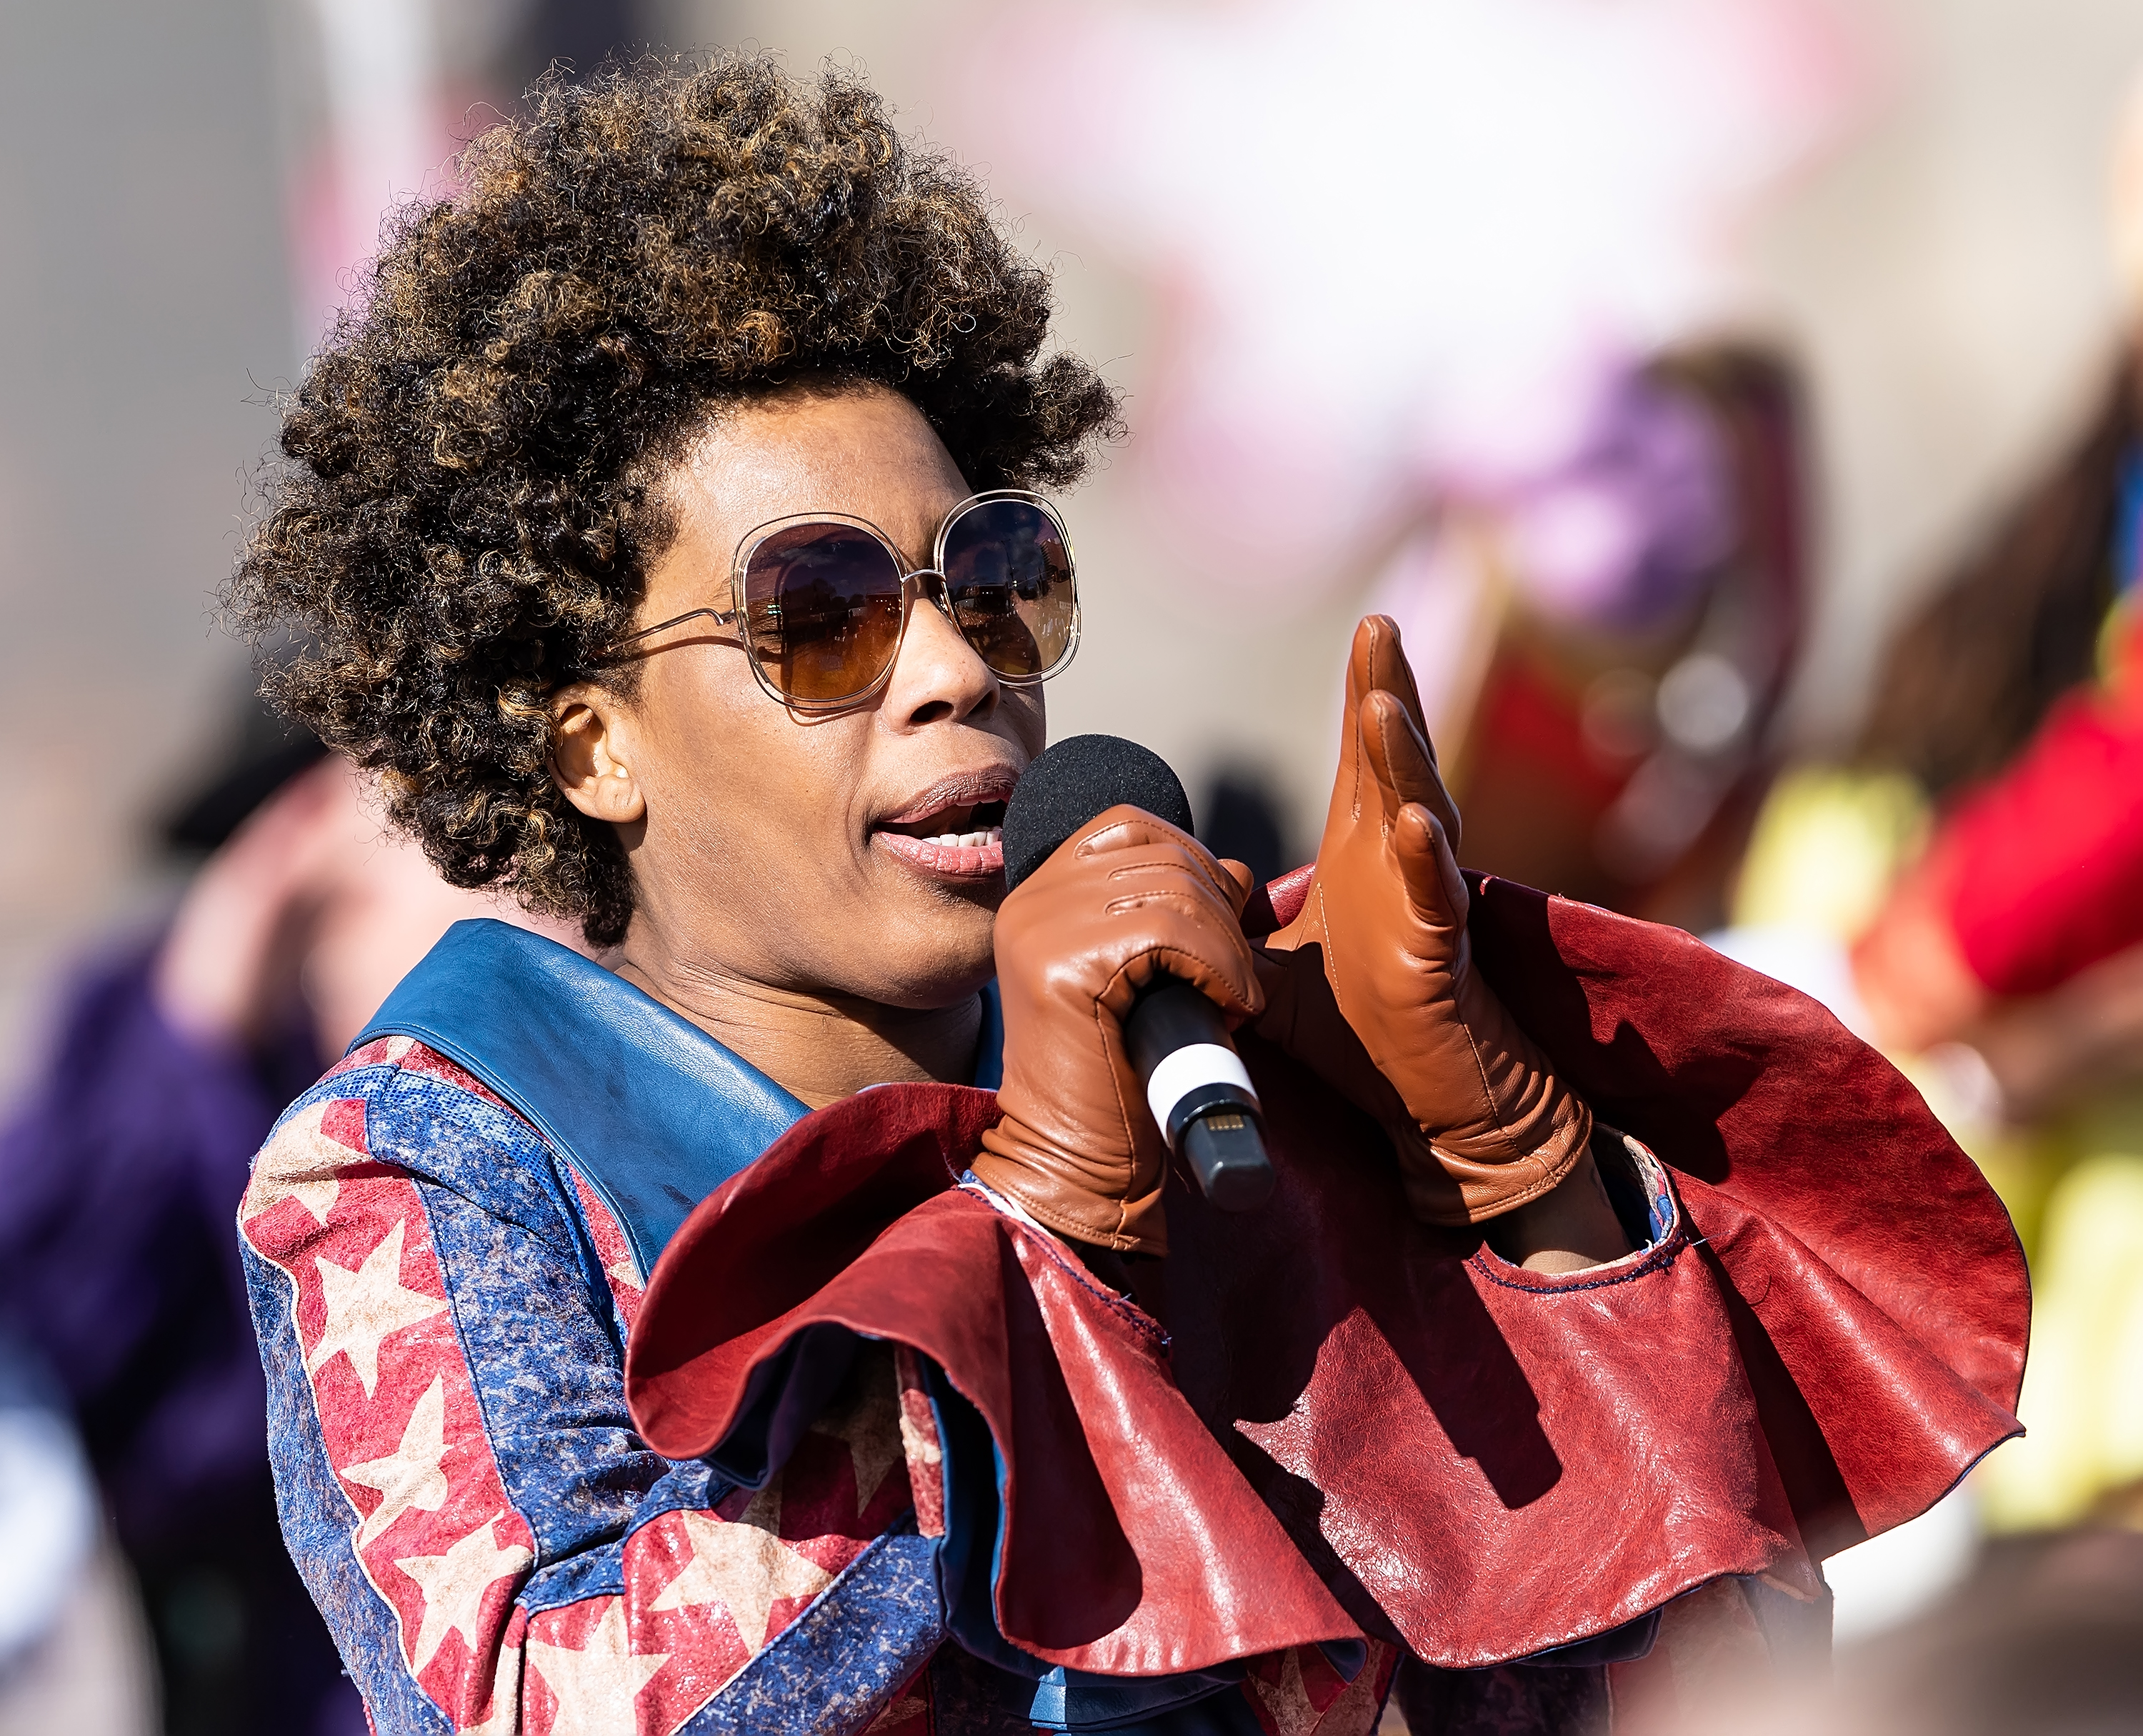 Singer Macy Gray writes op-ed calling for the U.S. flag to be replaced: 'It is tattered, dated, divisive and incorrect'